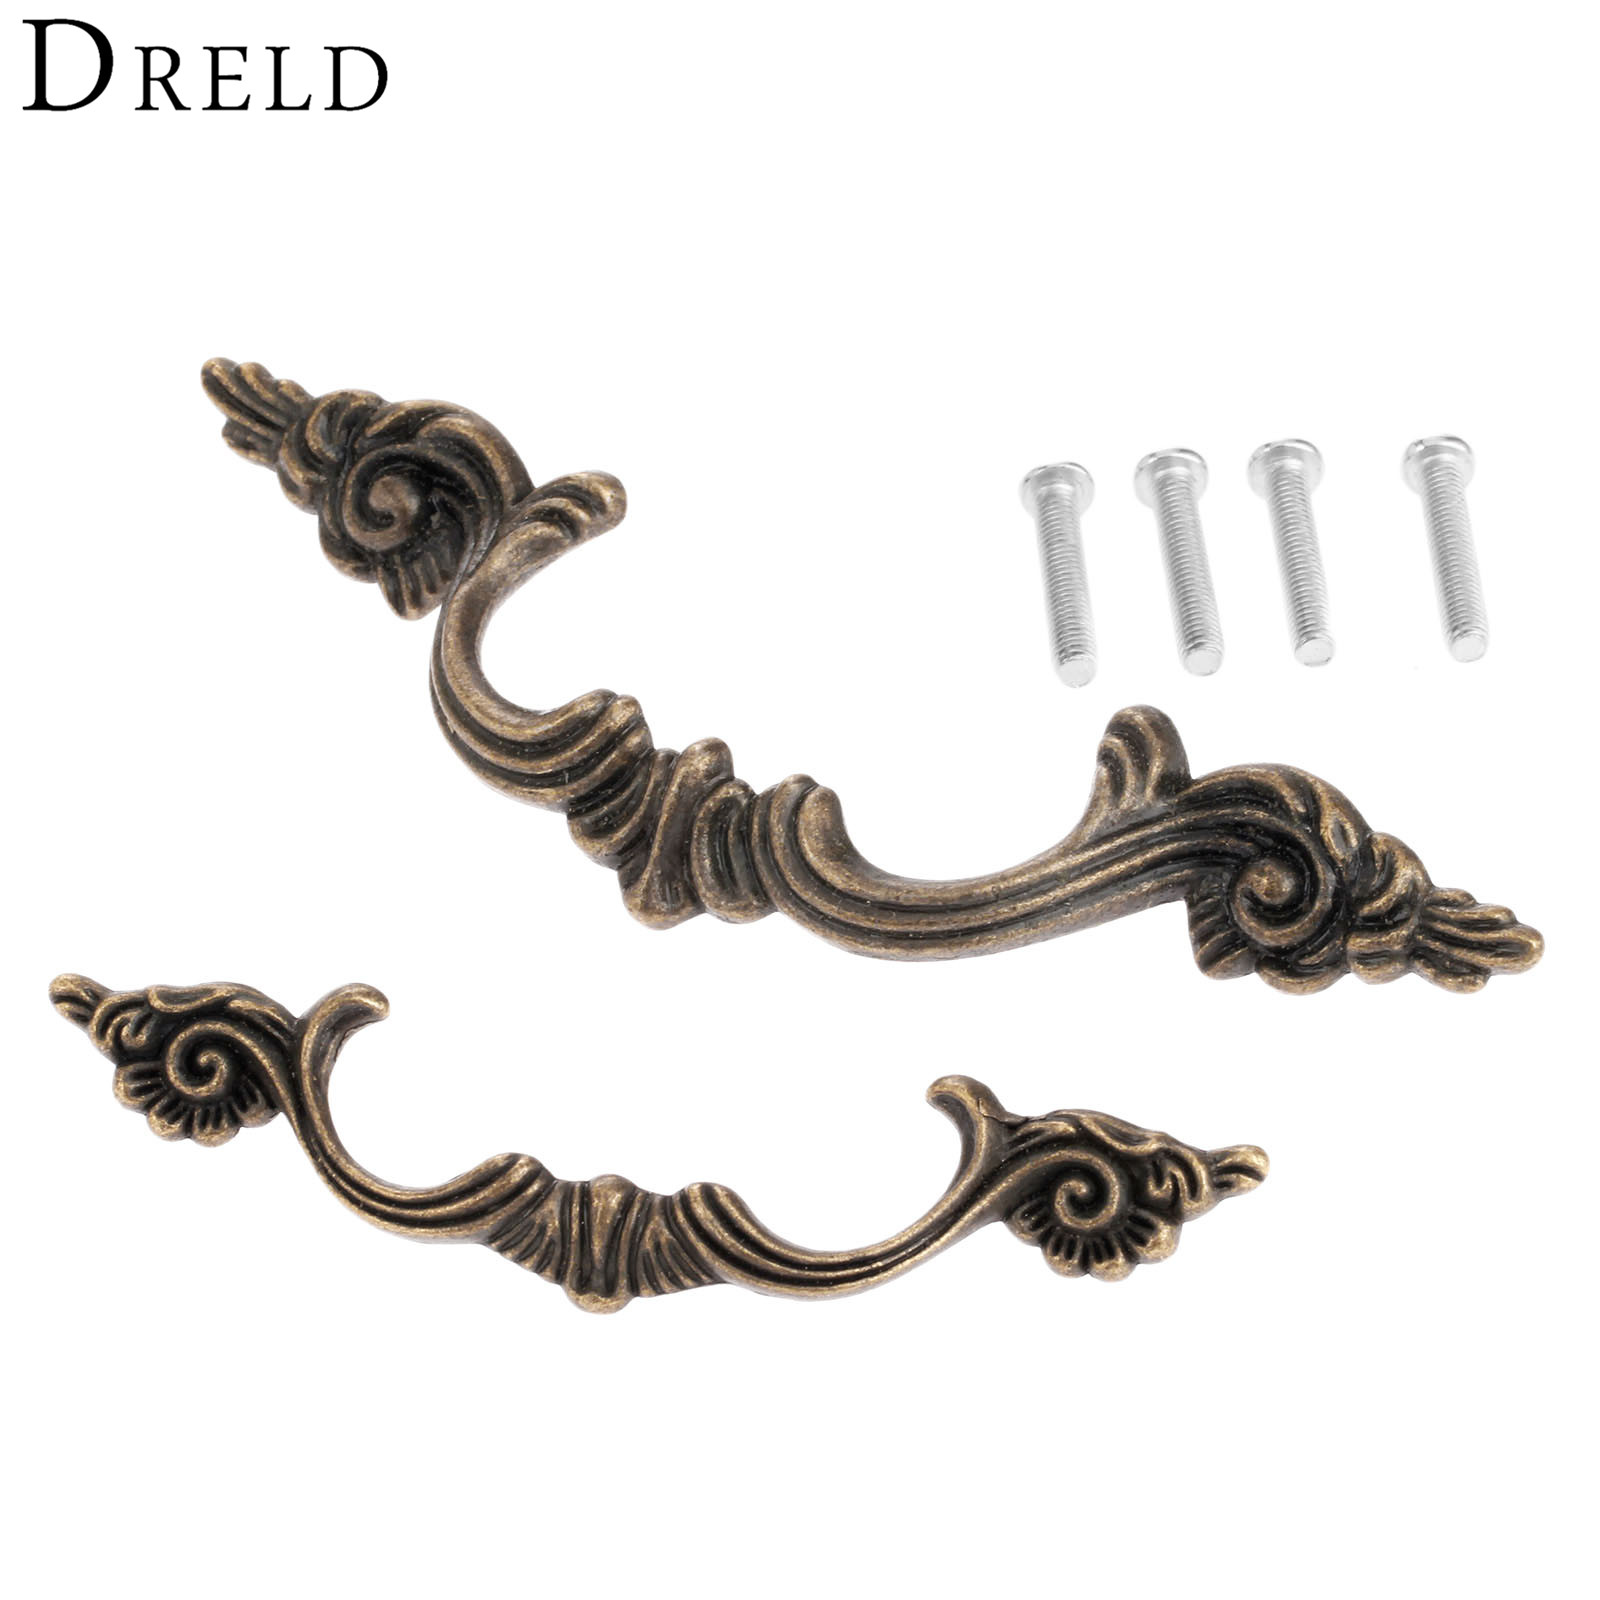 DRELD 1Pc Antique Furniture Handle Cabinet Knobs and Handles Drawer Kitchen Door Pull Cupboard Handle Furniture Fittings 64/97MM antique furniture handles wardrobe door pull dresser drawer handle kitchen cupboard handle cabinet knobs and handles 128mm 160mm